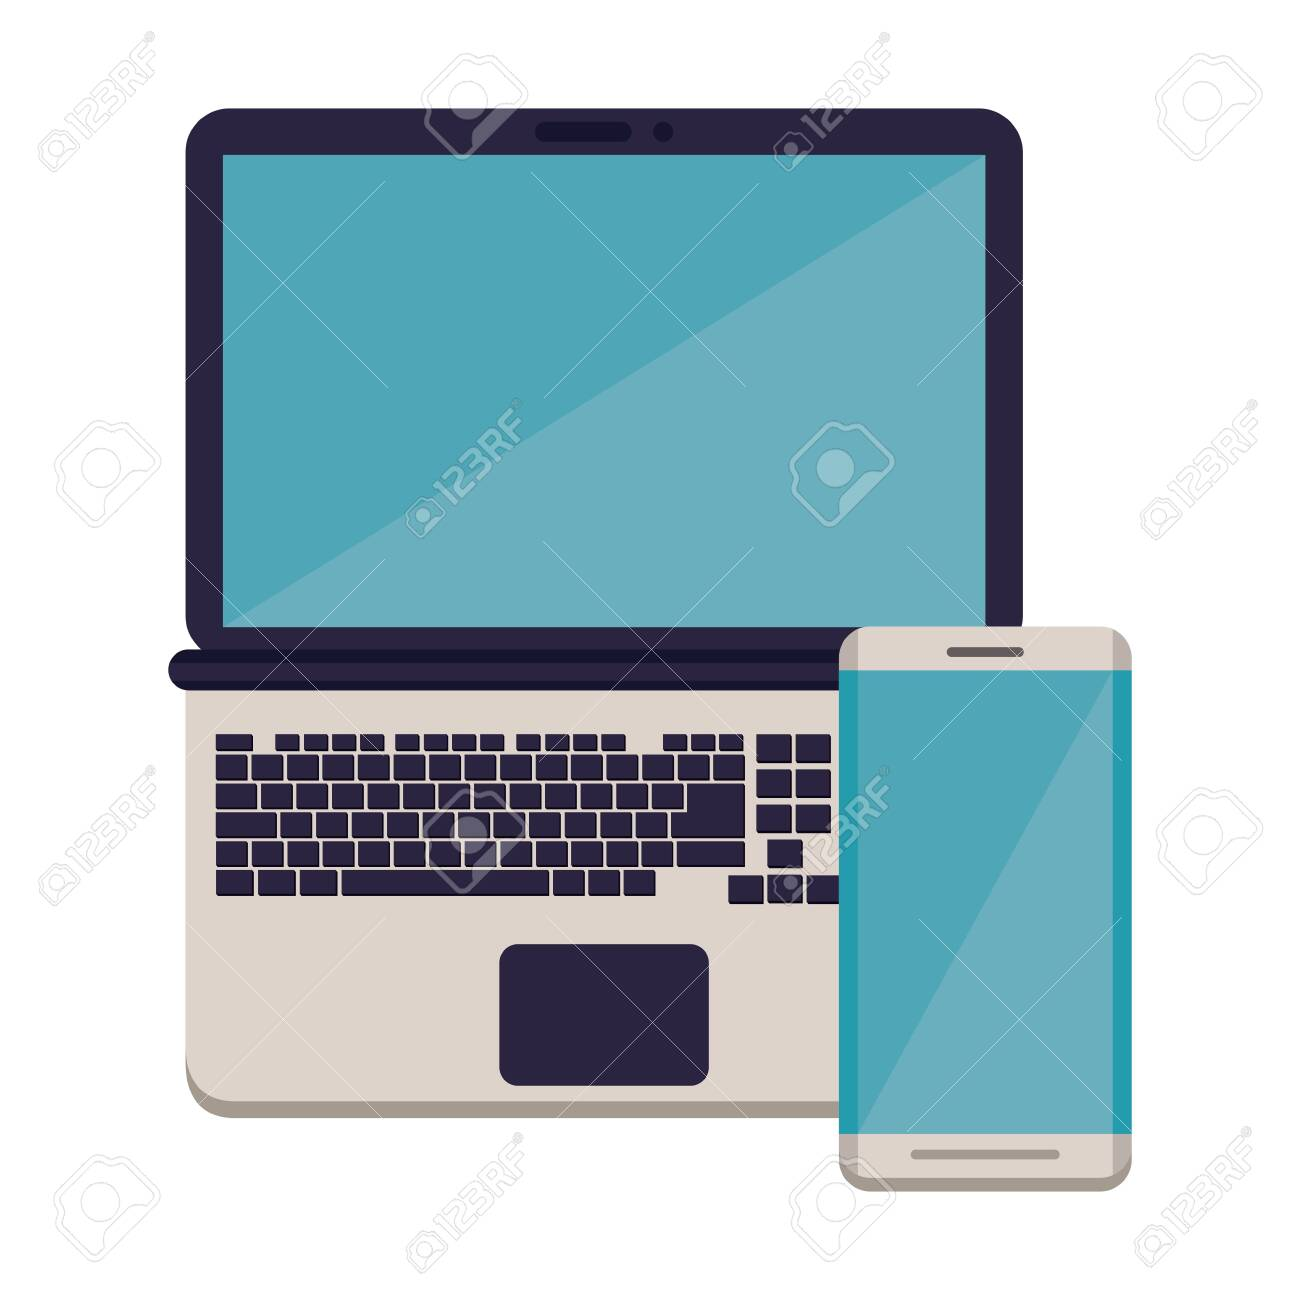 smartphone with laptop electronic devices vector illustration design - 135586435